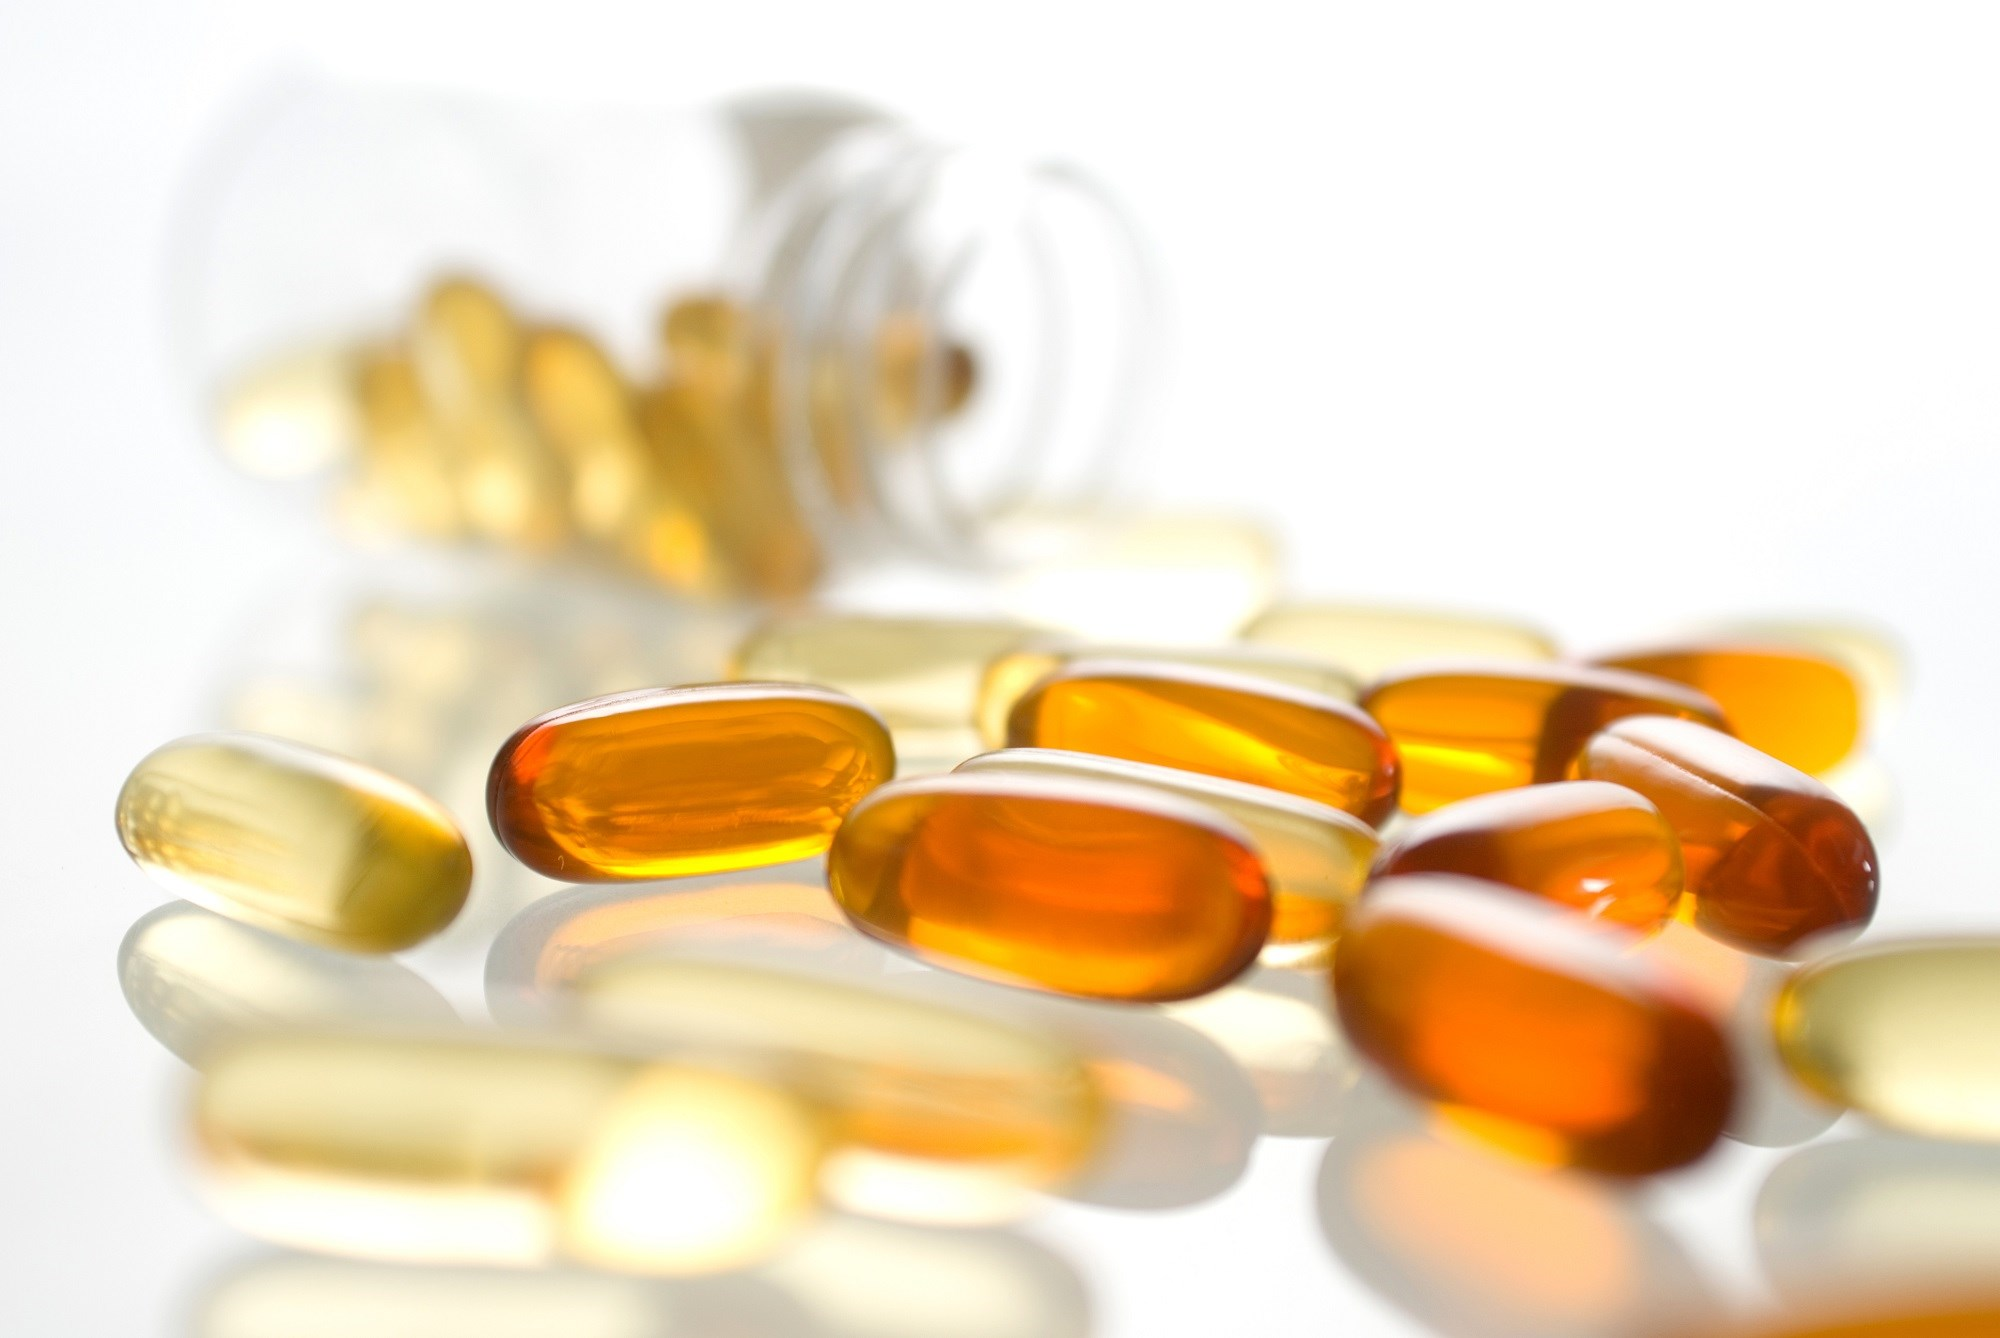 Coenzyme Q10 Supplementation May Reduce Statin-Induced Myopathy